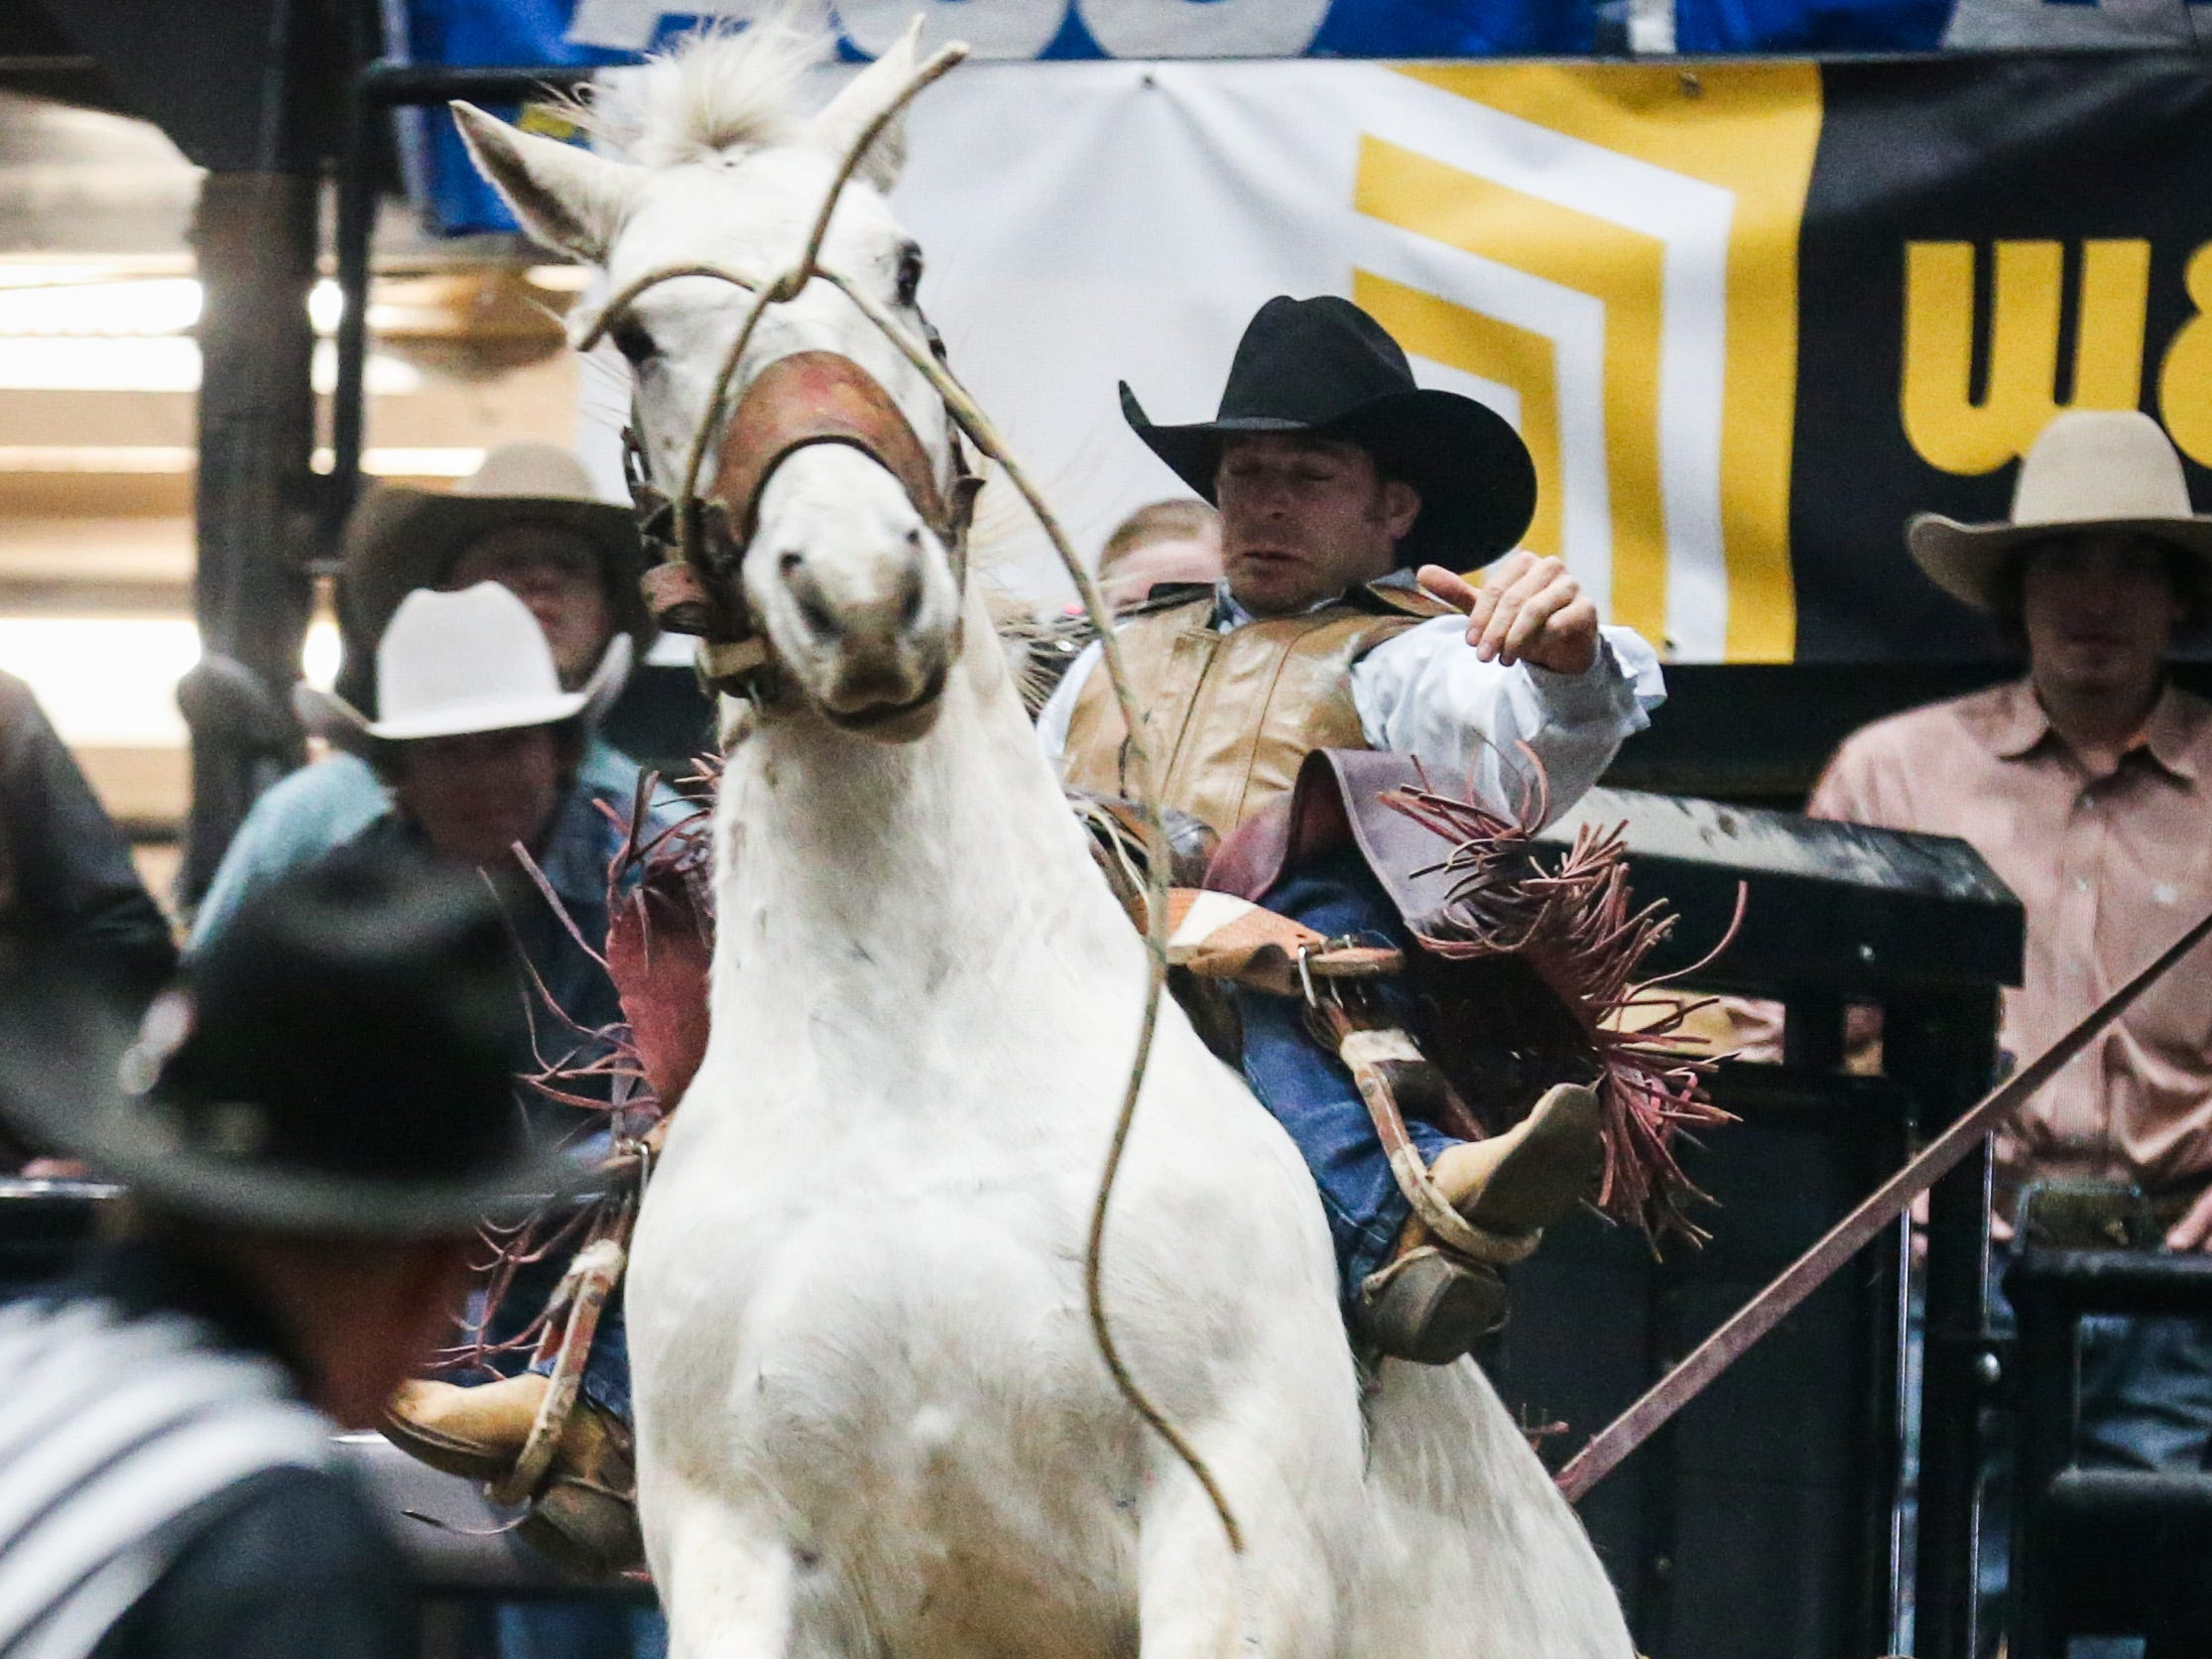 Aaron Life comes out of the chute on bronc named Another Grey during the 2nd performance of the San Angelo Stock Show & Rodeo  Saturday, Feb. 2, 2019, at Foster Communications Coliseum.